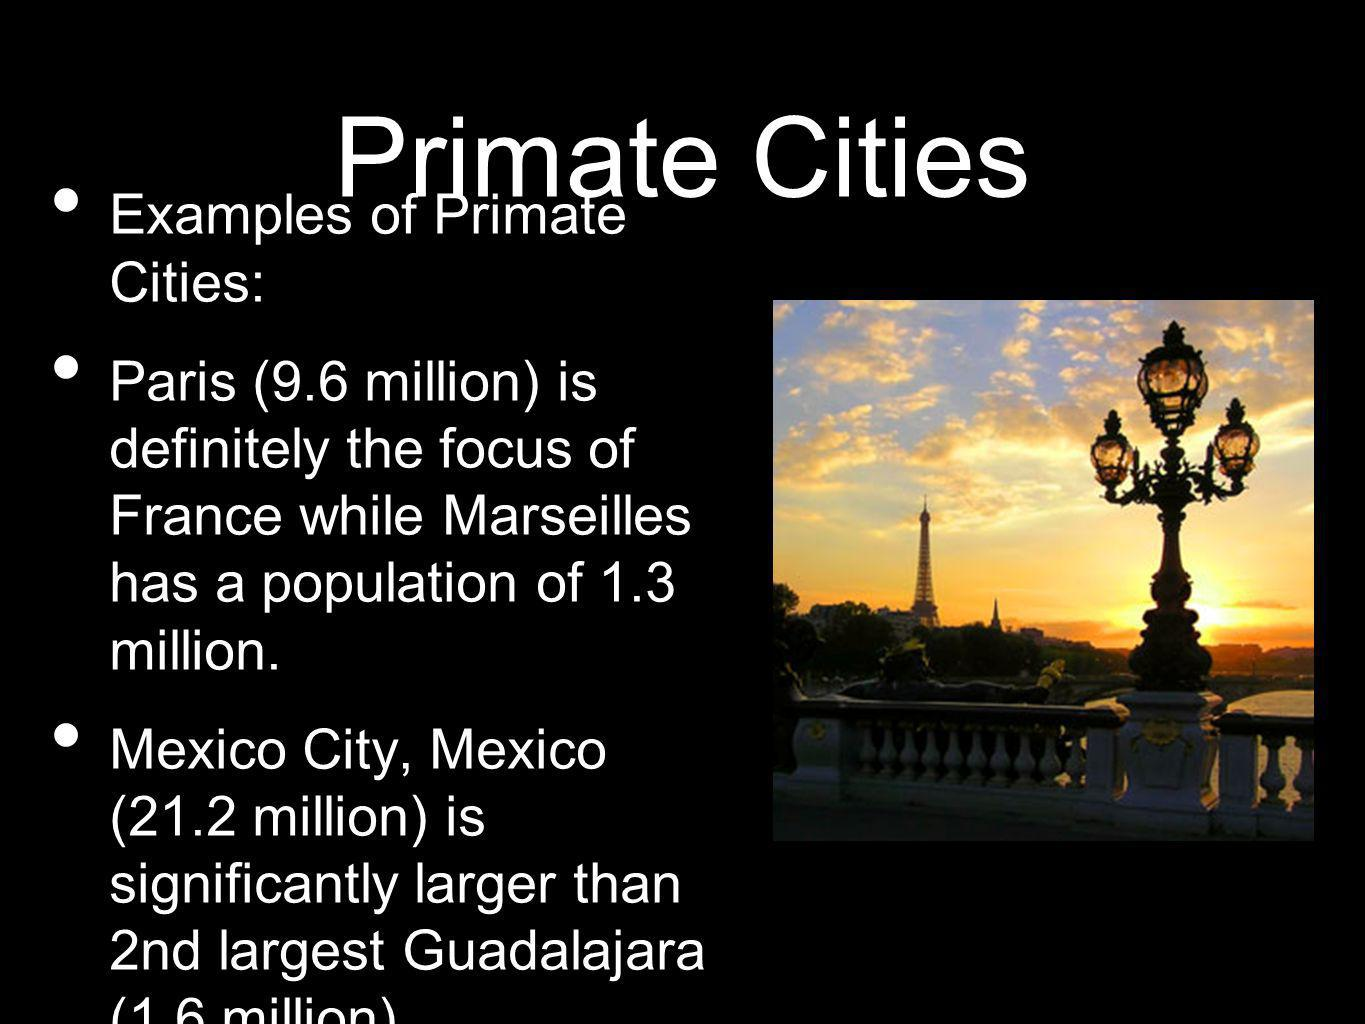 Primate Cities Examples of Primate Cities: